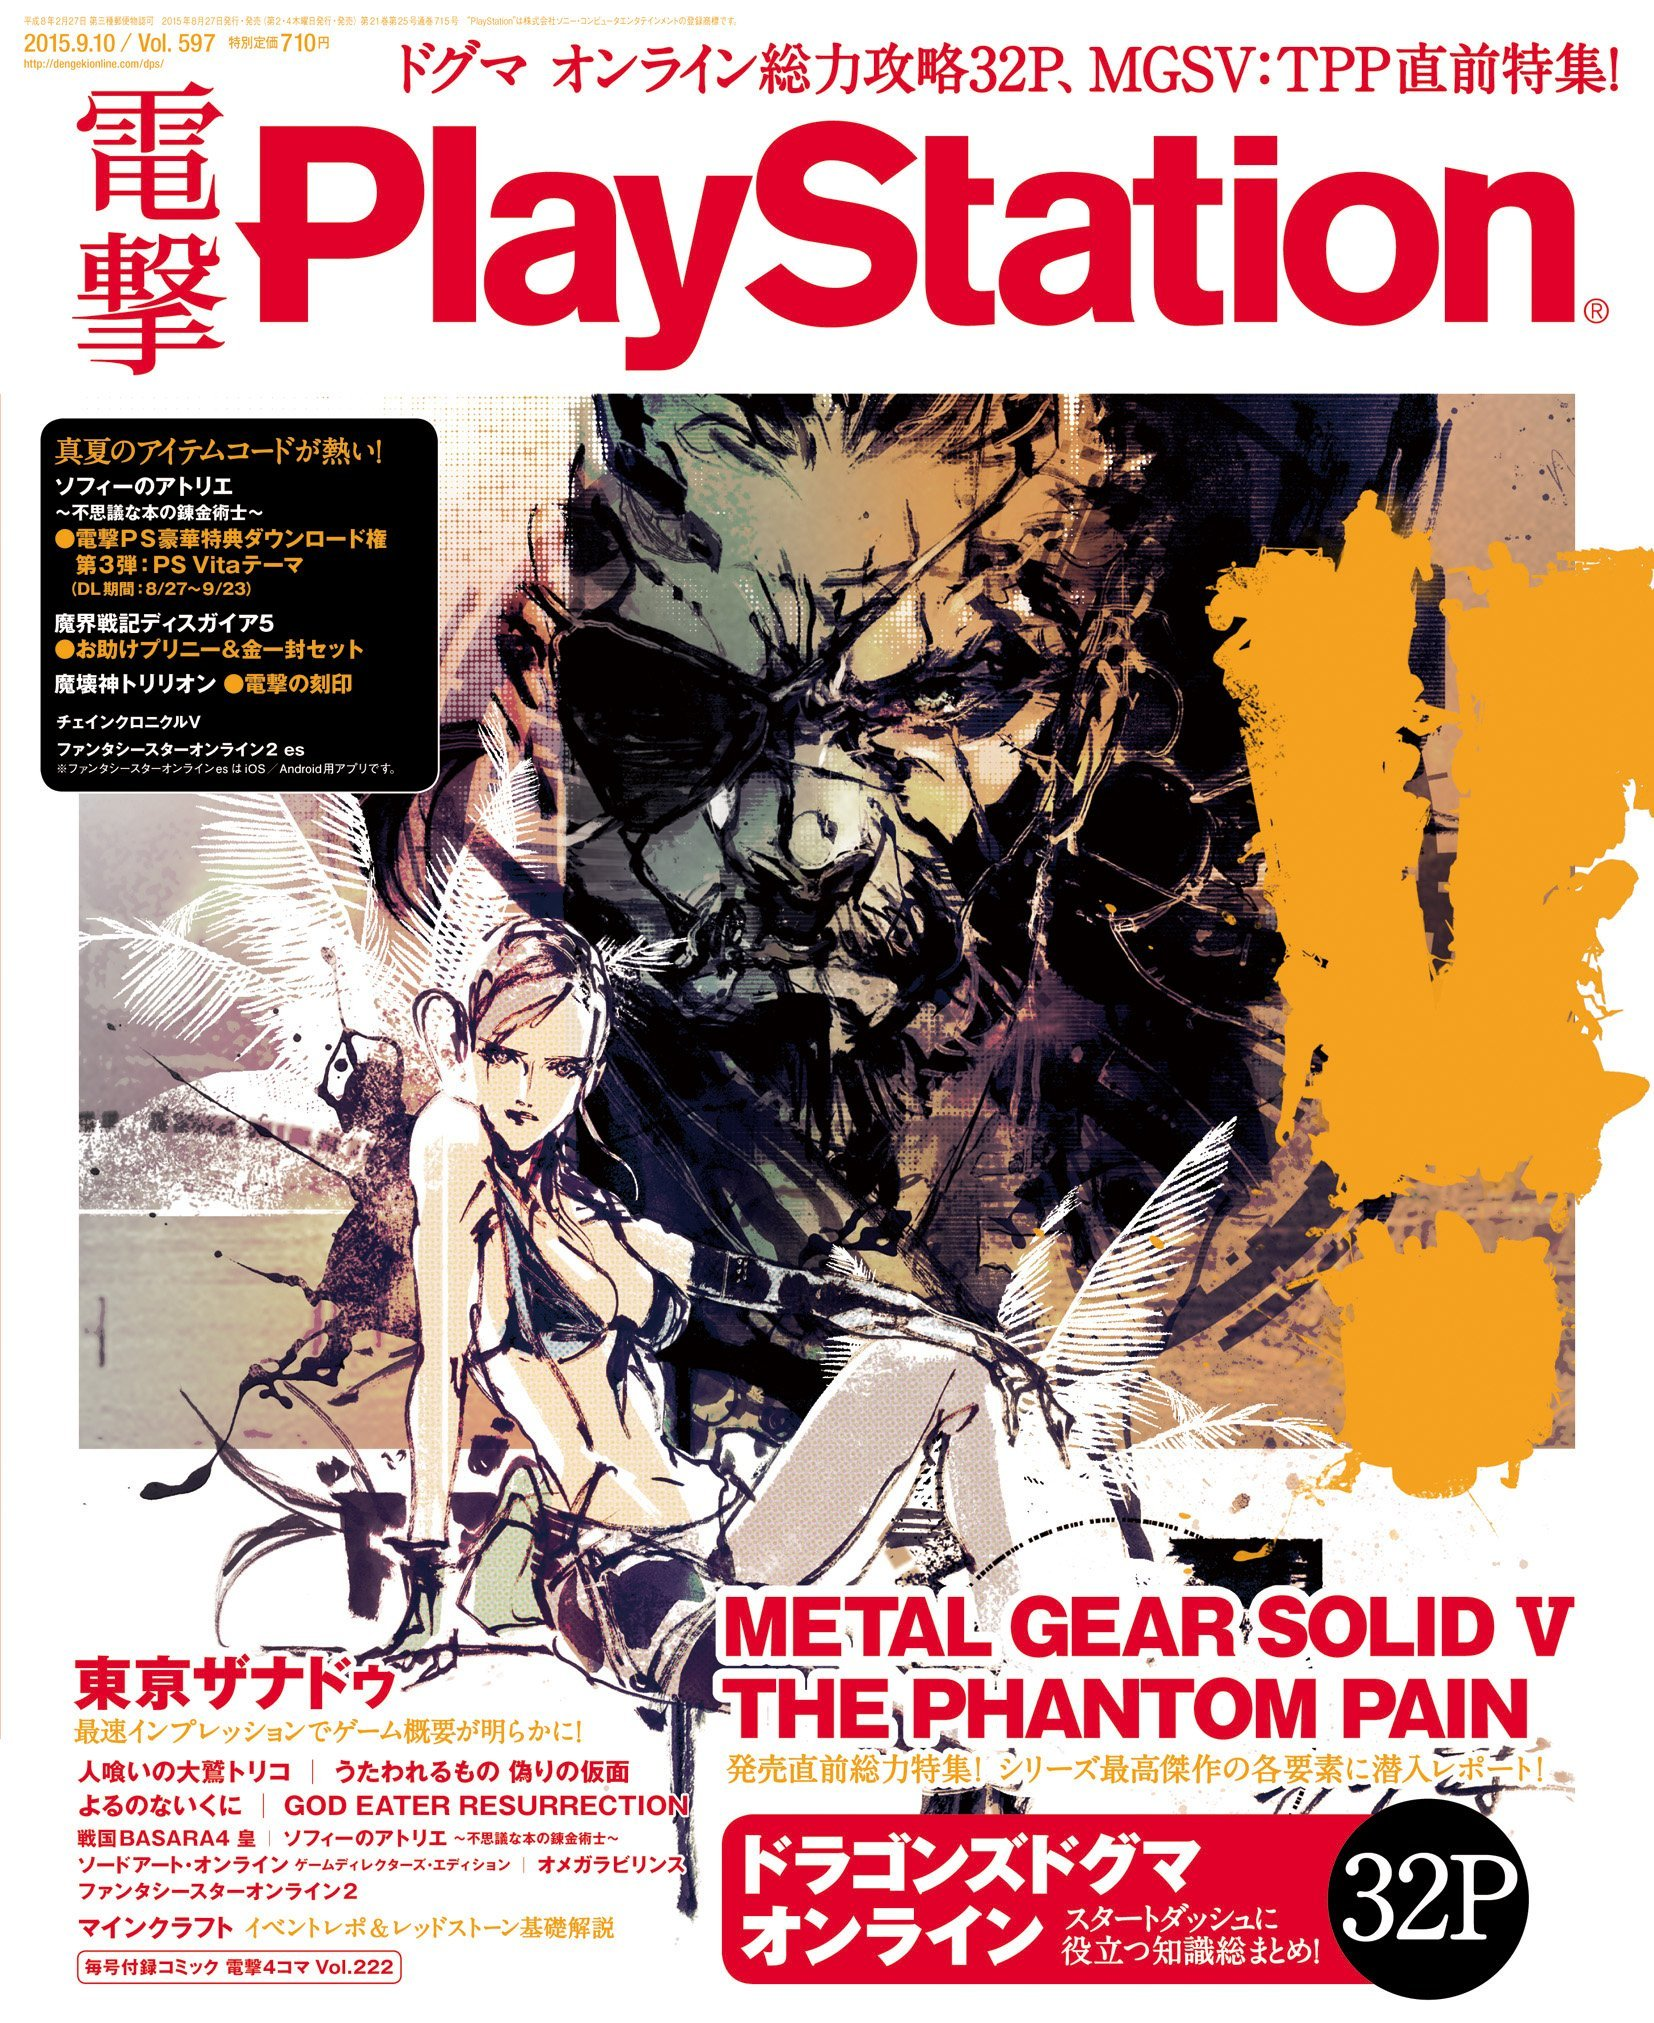 Dengeki PlayStation 597 (September 10, 2015)